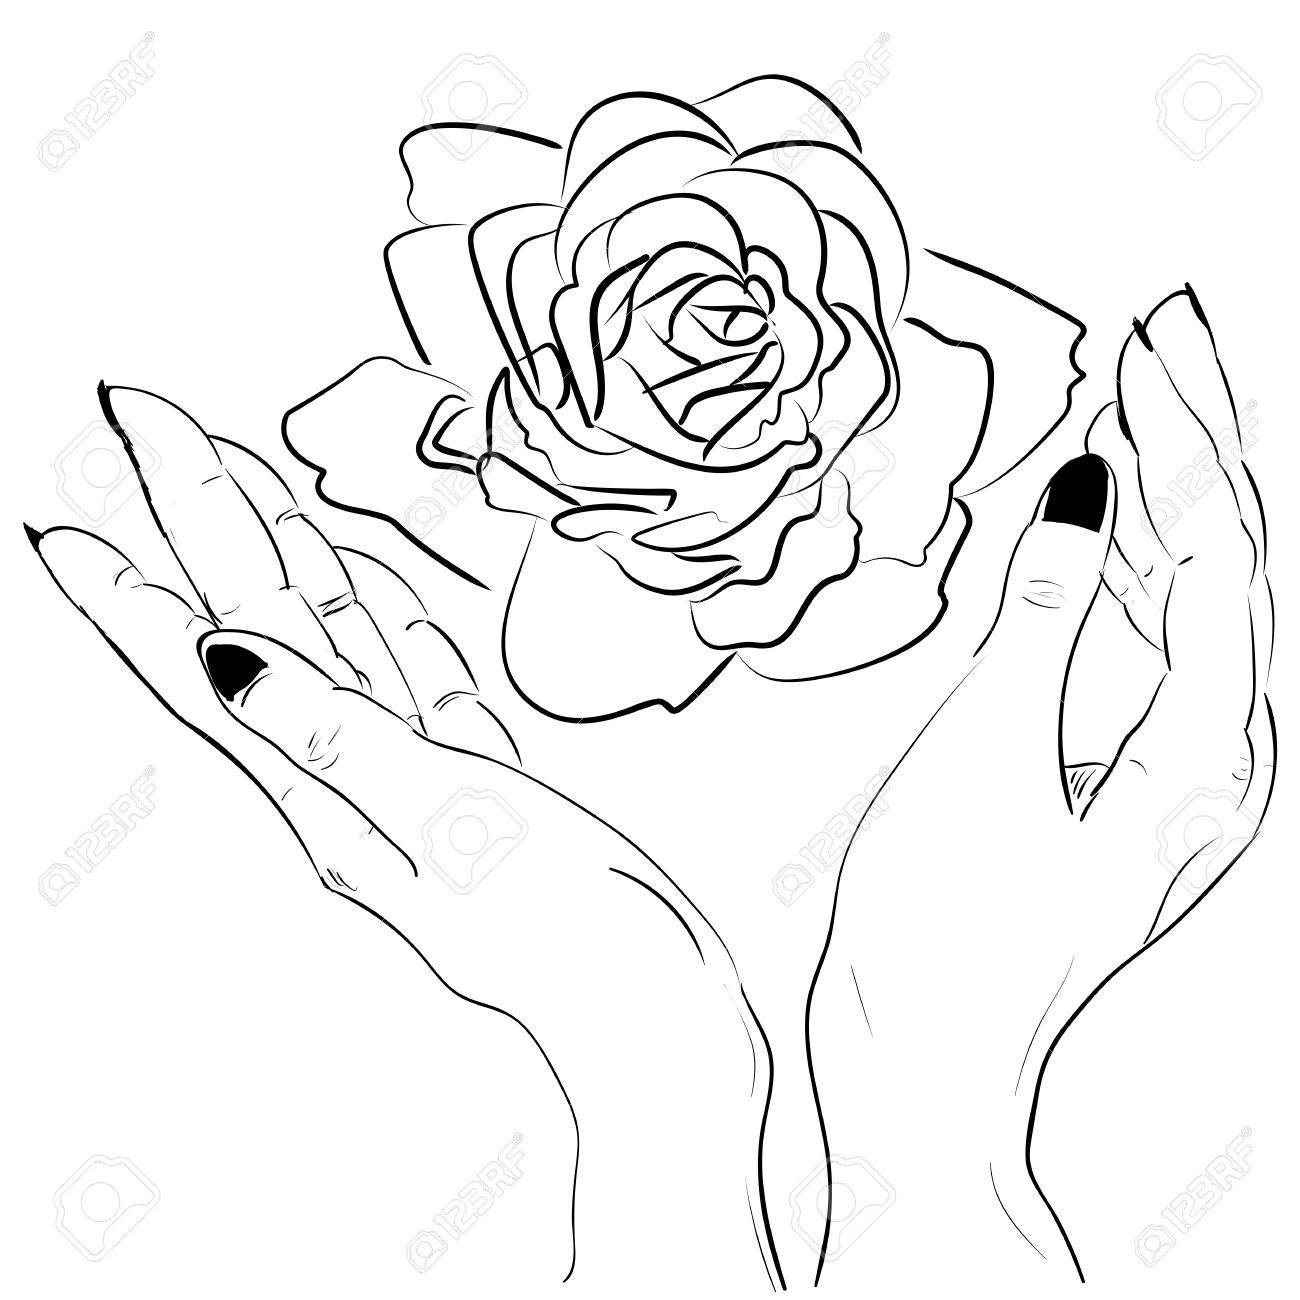 1300x1300 Hands Holding A Rose Flower Isolated Outline Hand Drawn Sketch